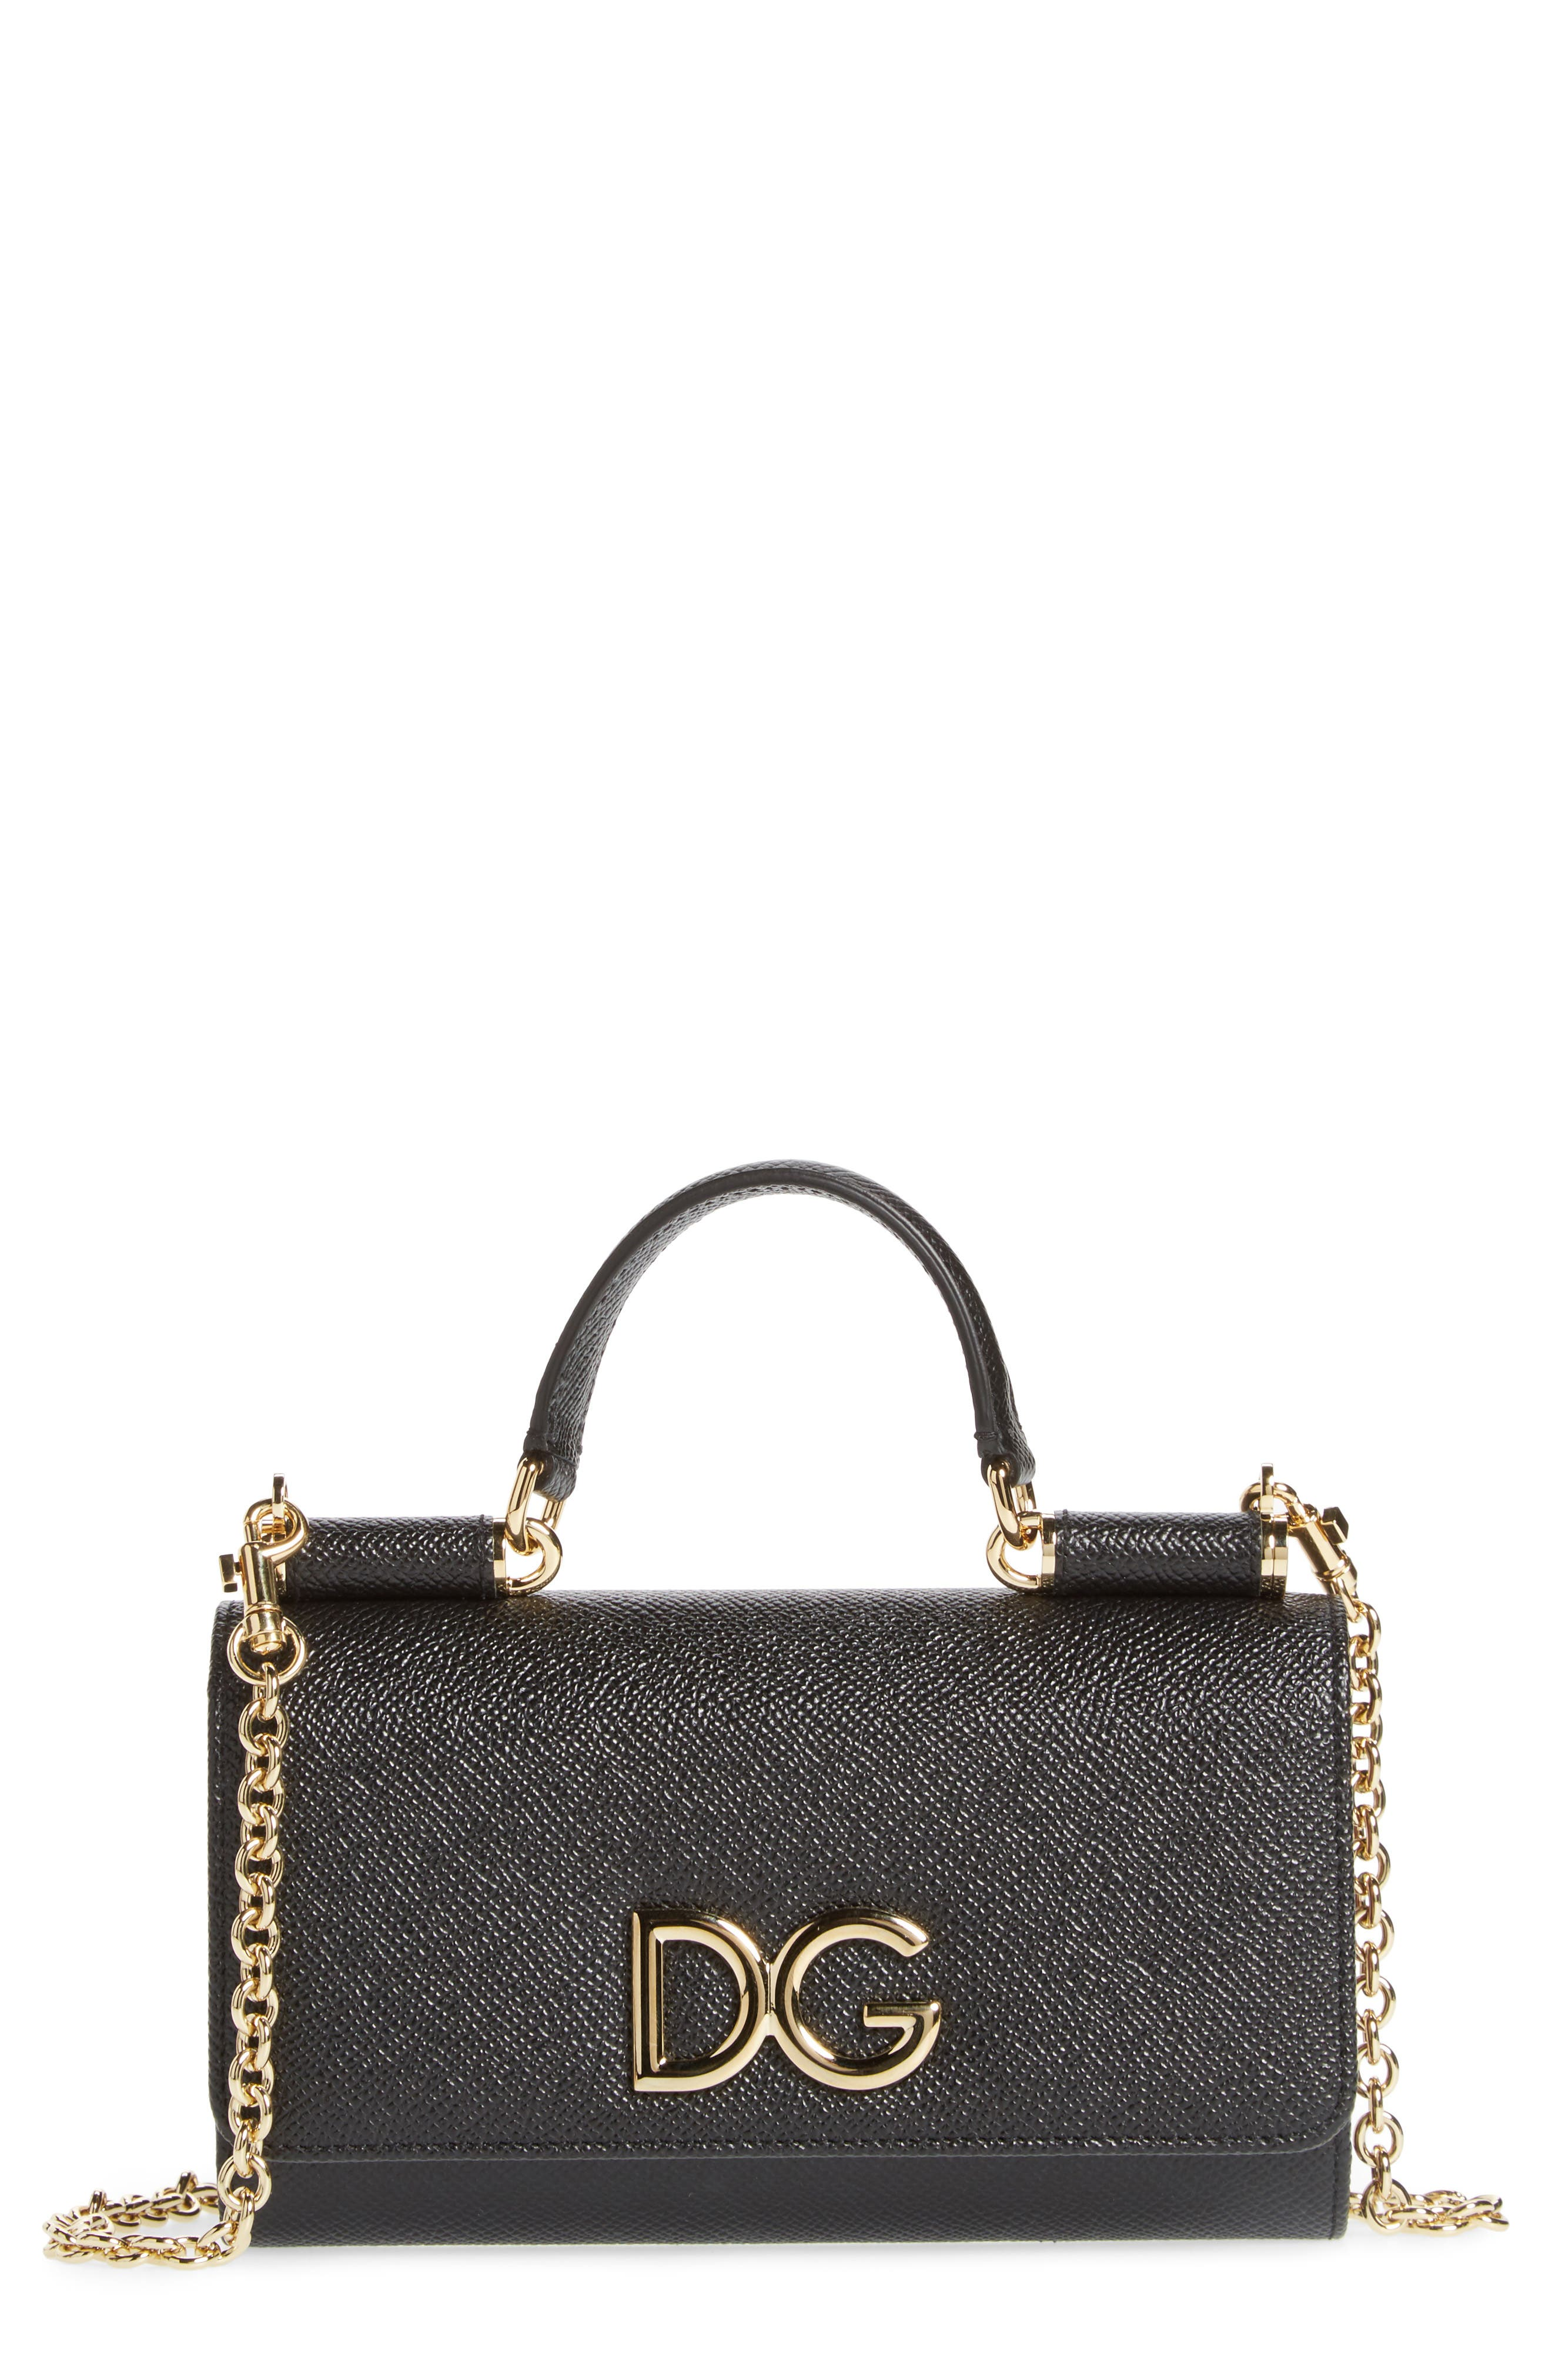 Main Image - Dolce&Gabanna Logo Phone Wallet on a Chain